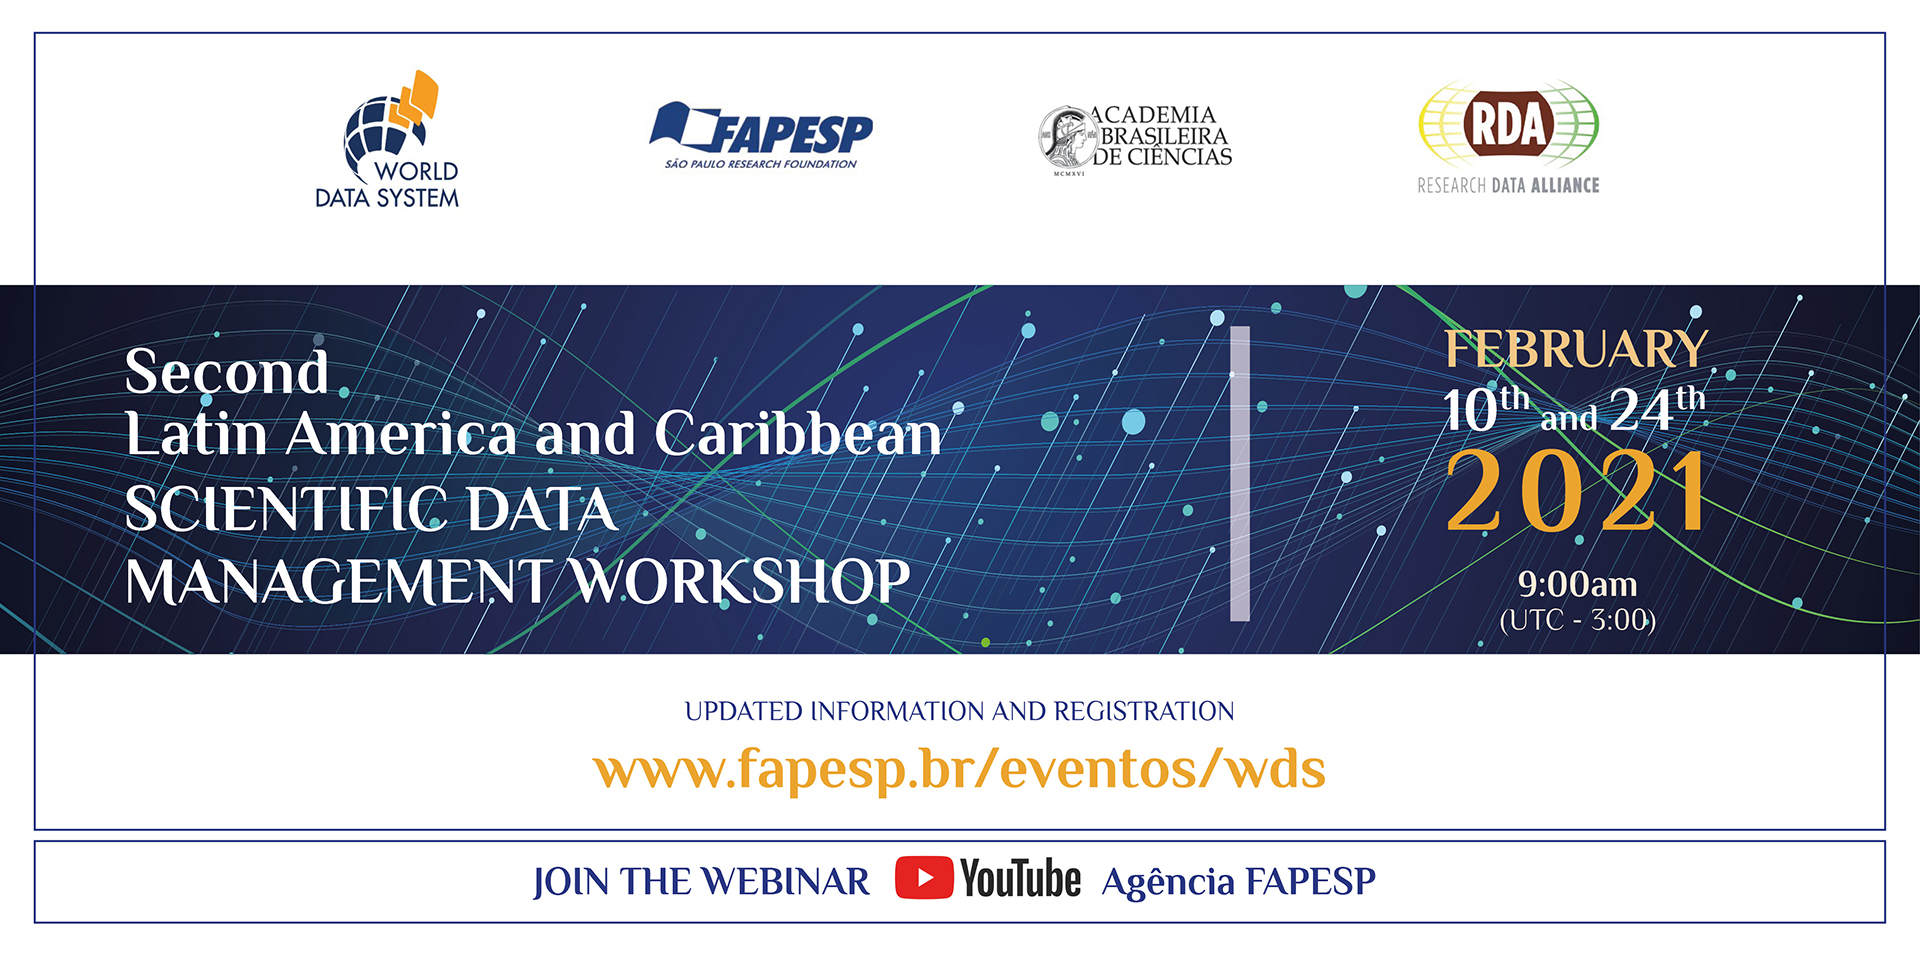 Second Latin America and Caribbean Scientific Data Management Workshop